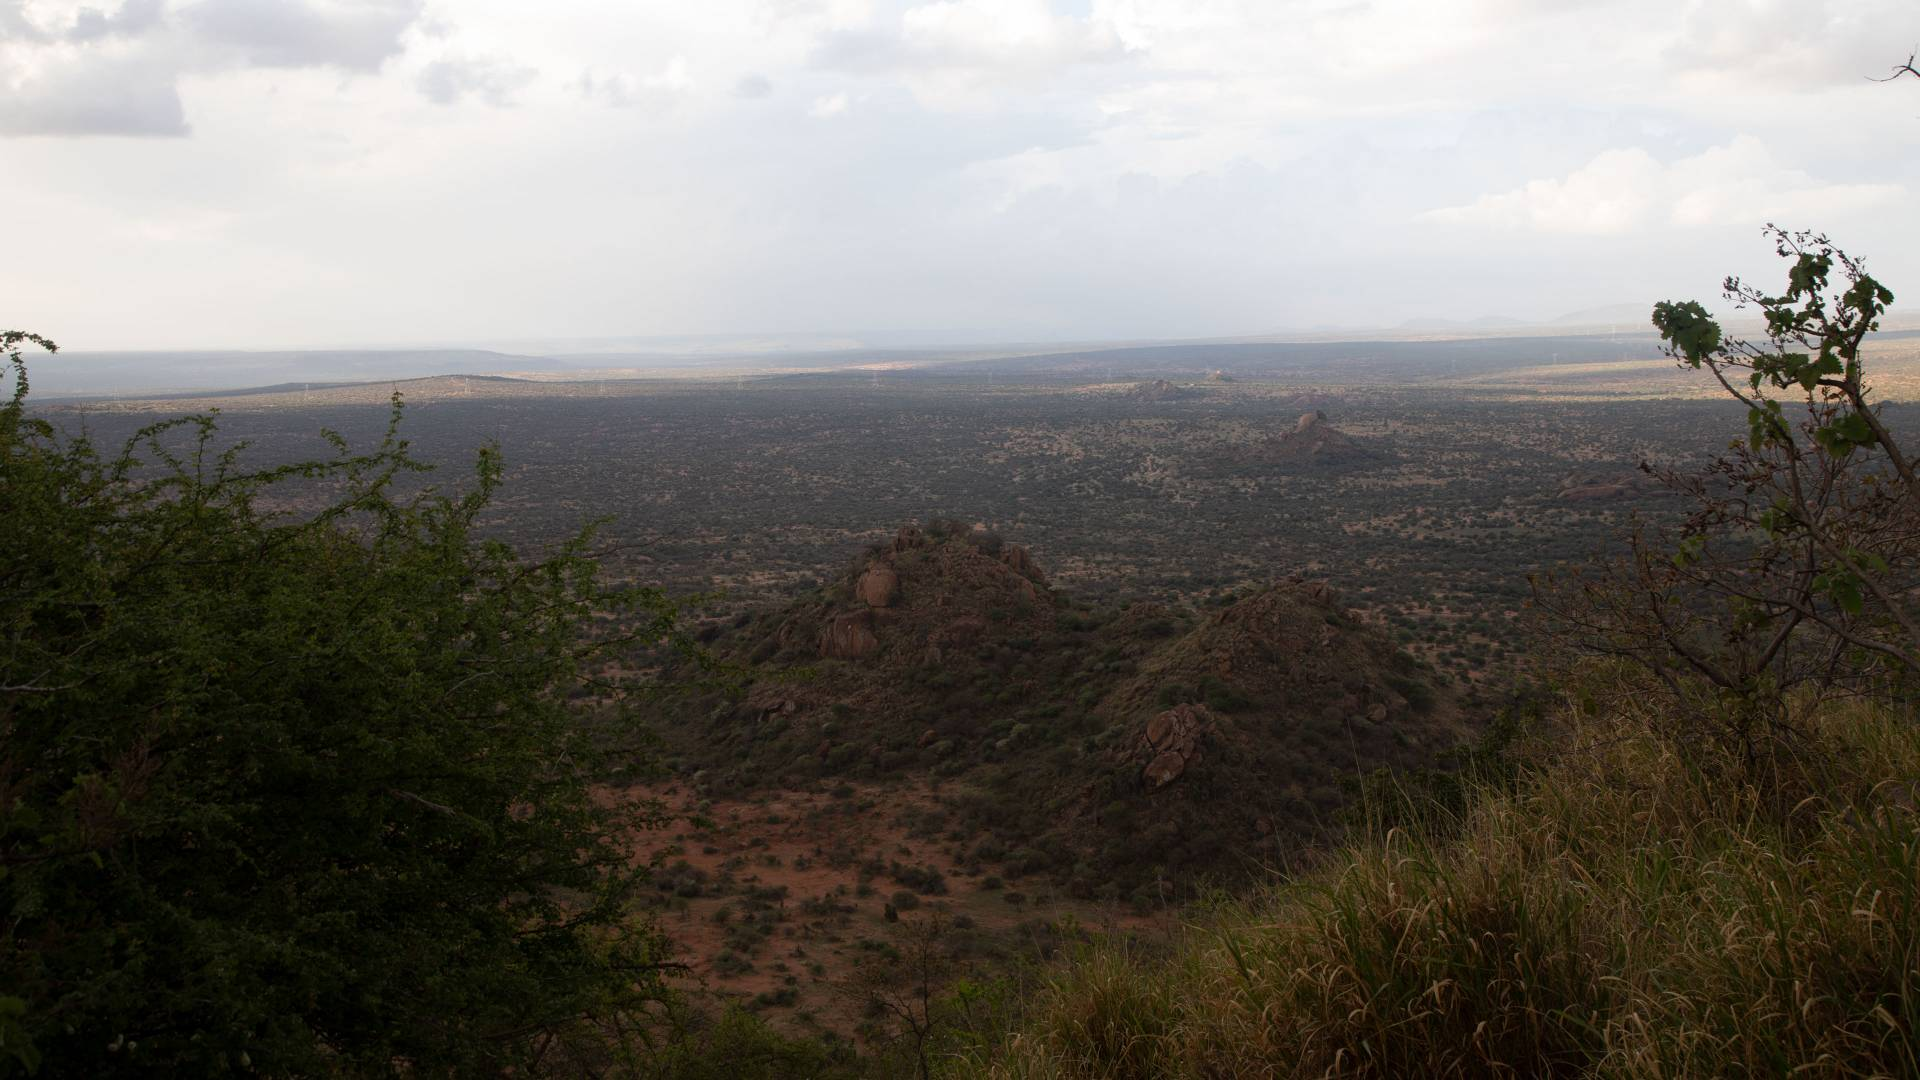 View from Mt. Mukenya